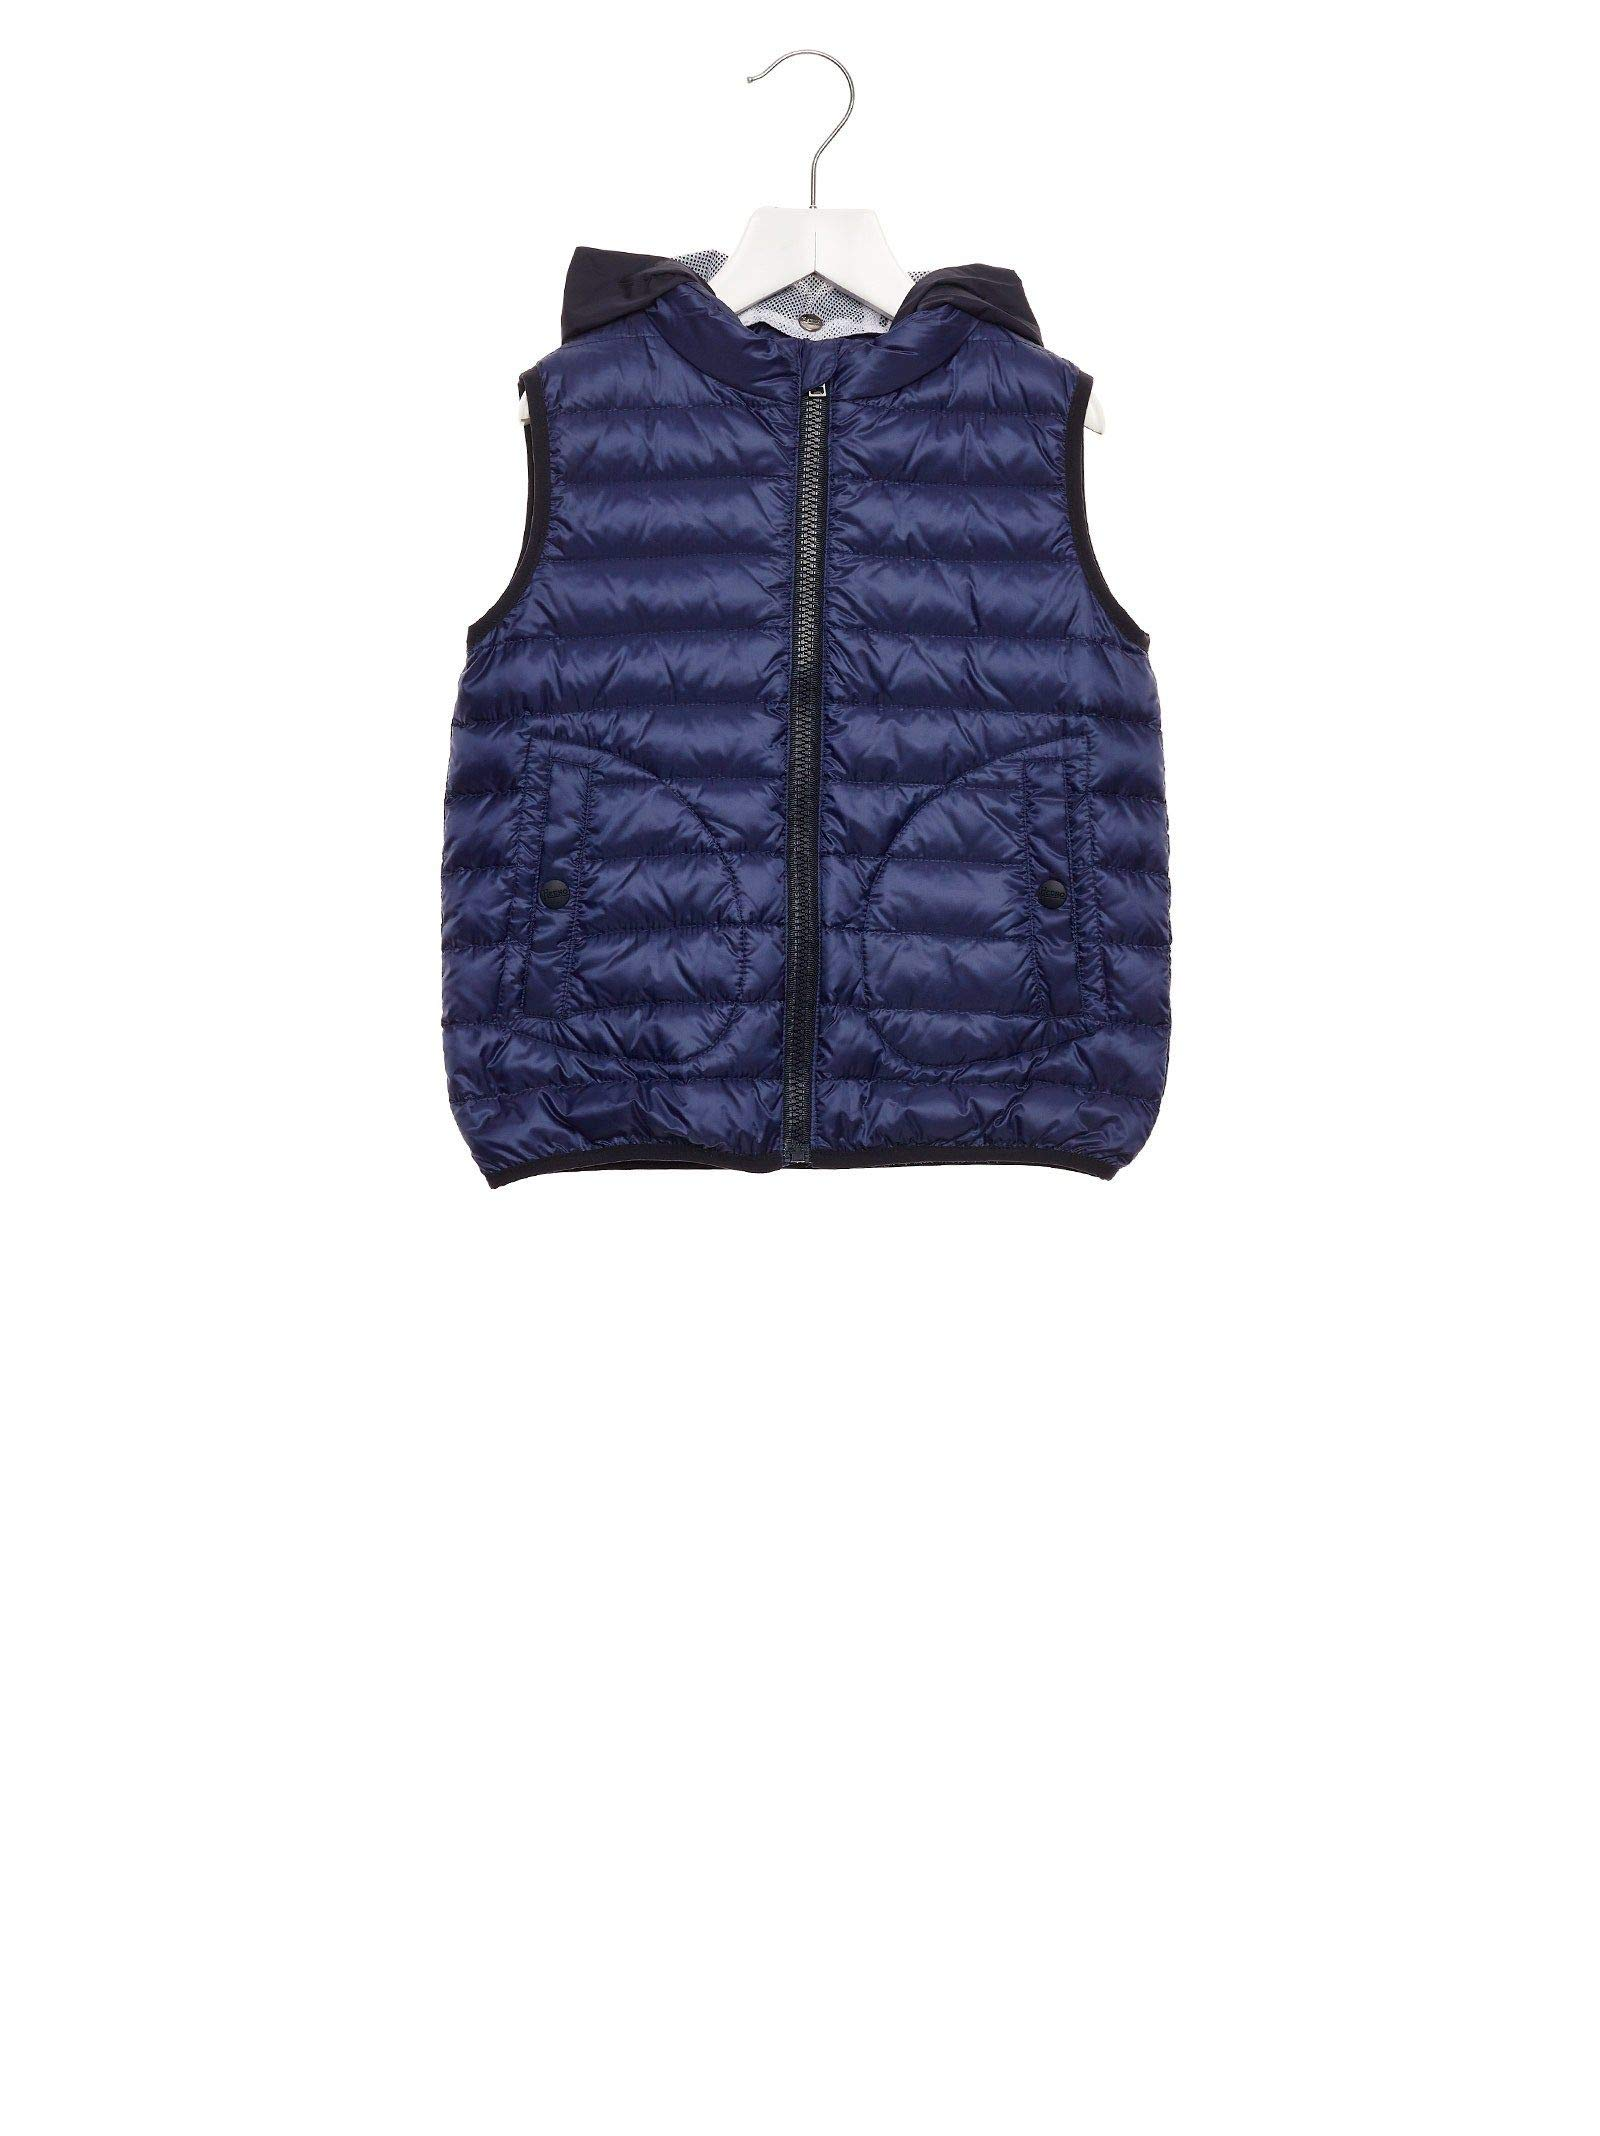 Herno Luxury Fashion Boys PI0042B120209248 Blue Vest | Fall Winter 19 by Herno